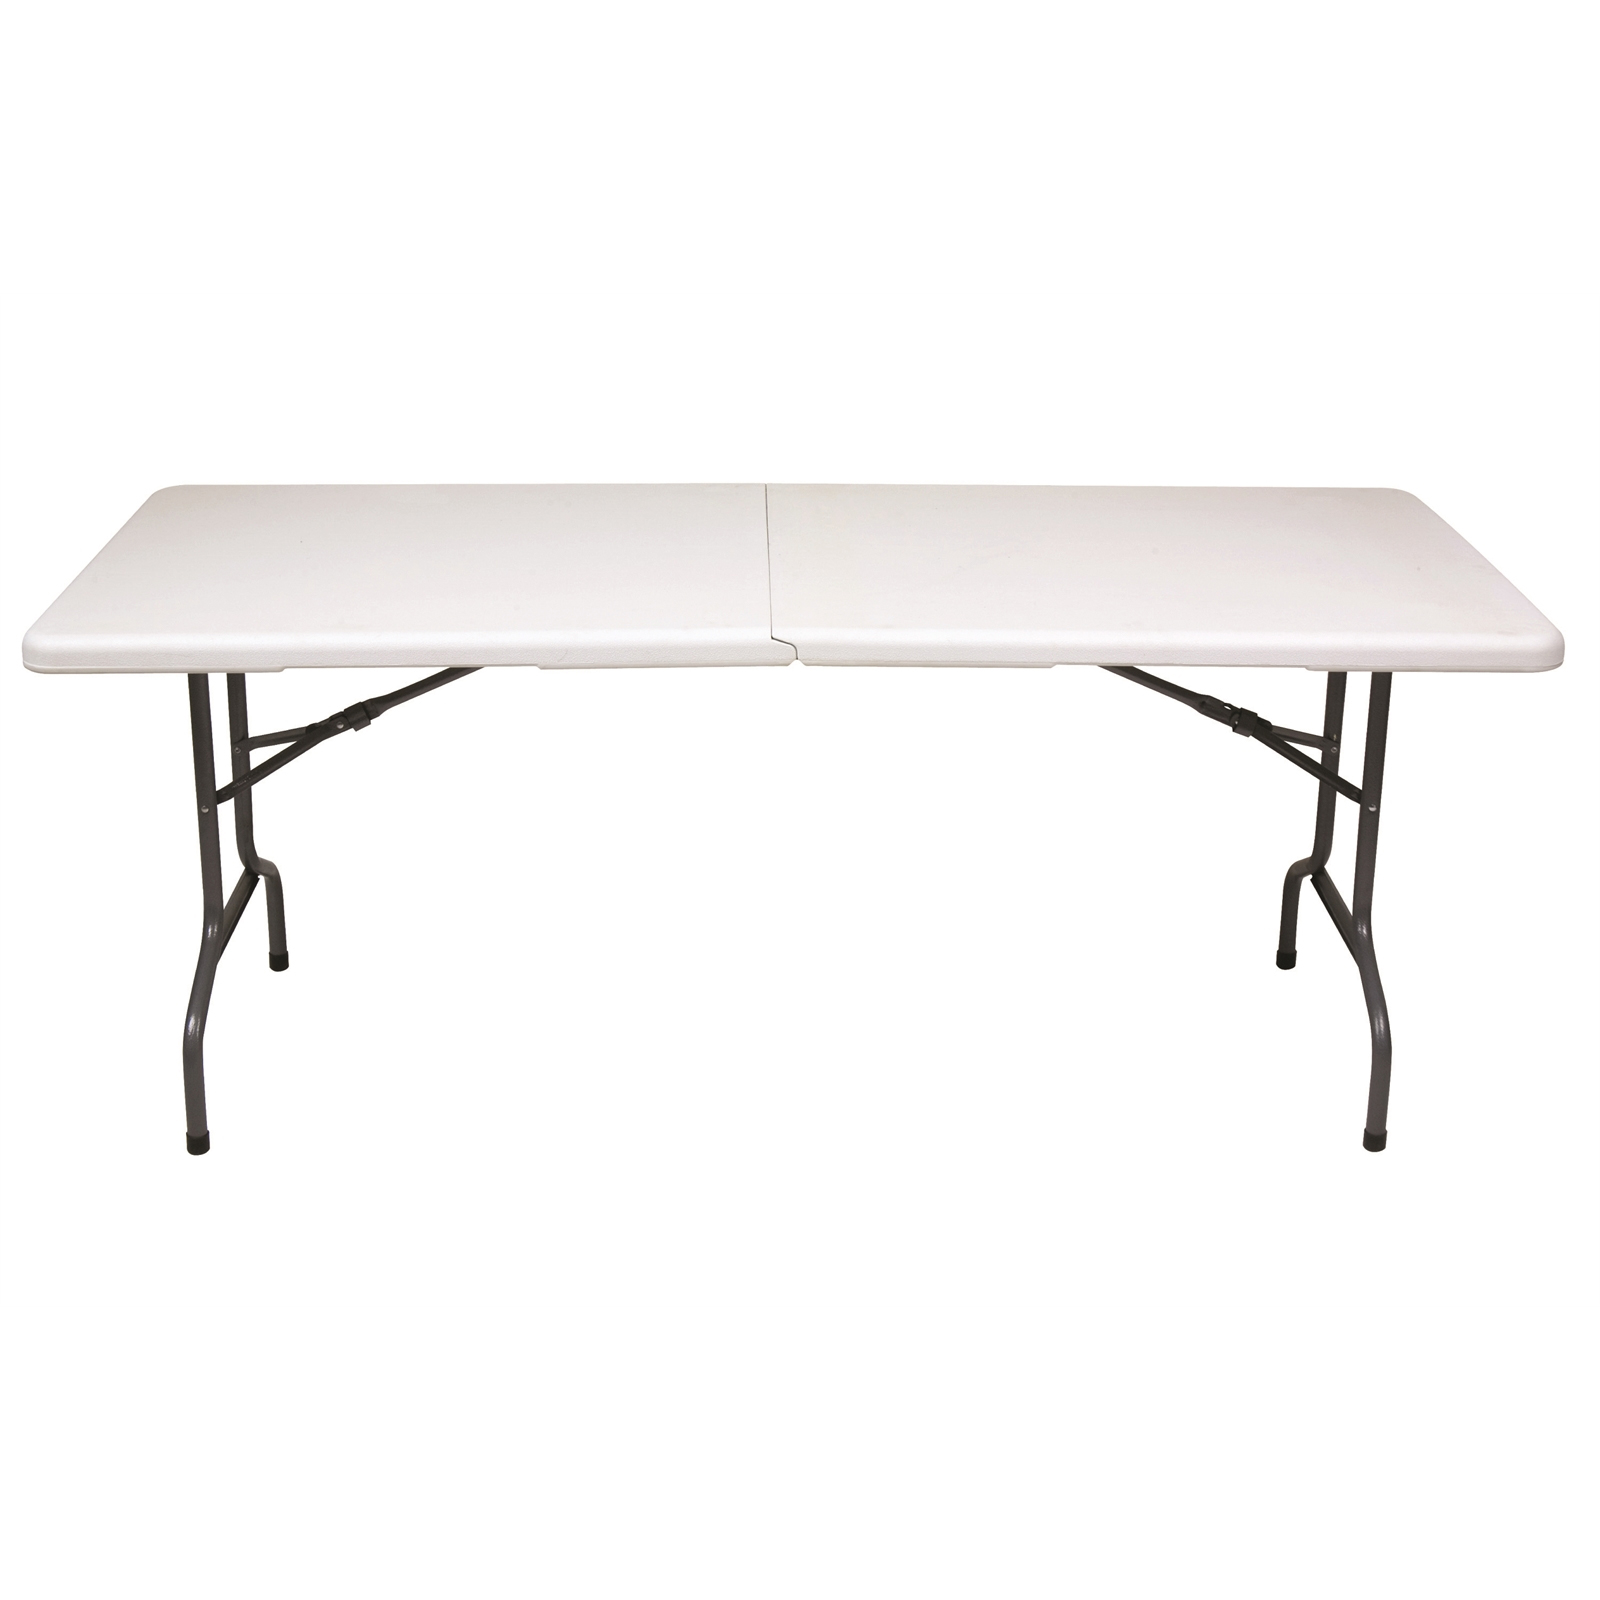 White Foldable Trestle Table Styled Event Hire